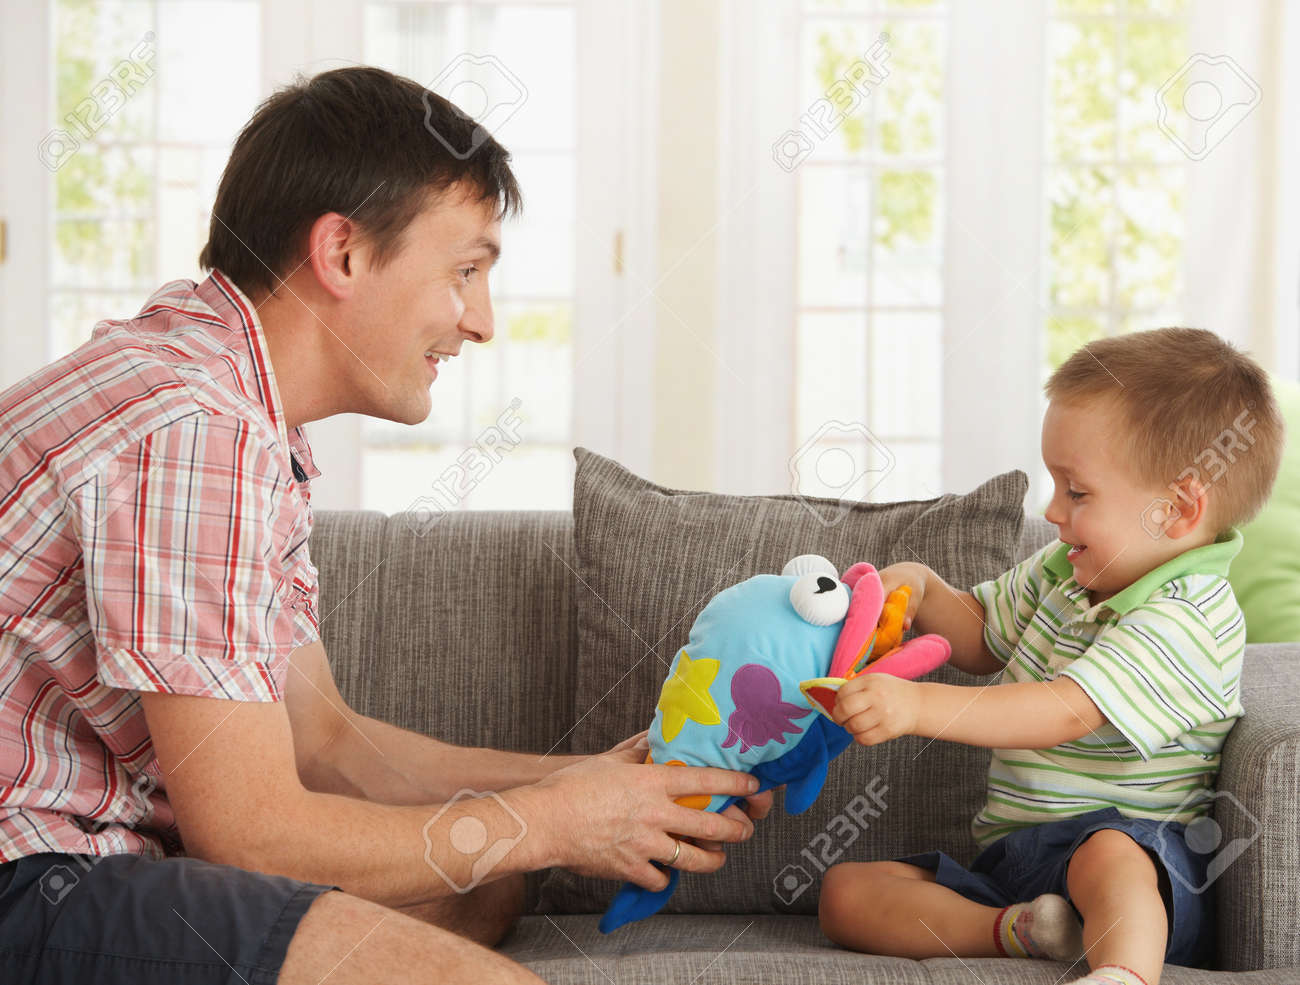 Happy father and son having fun playing on couch at home. Stock Photo - 7434940